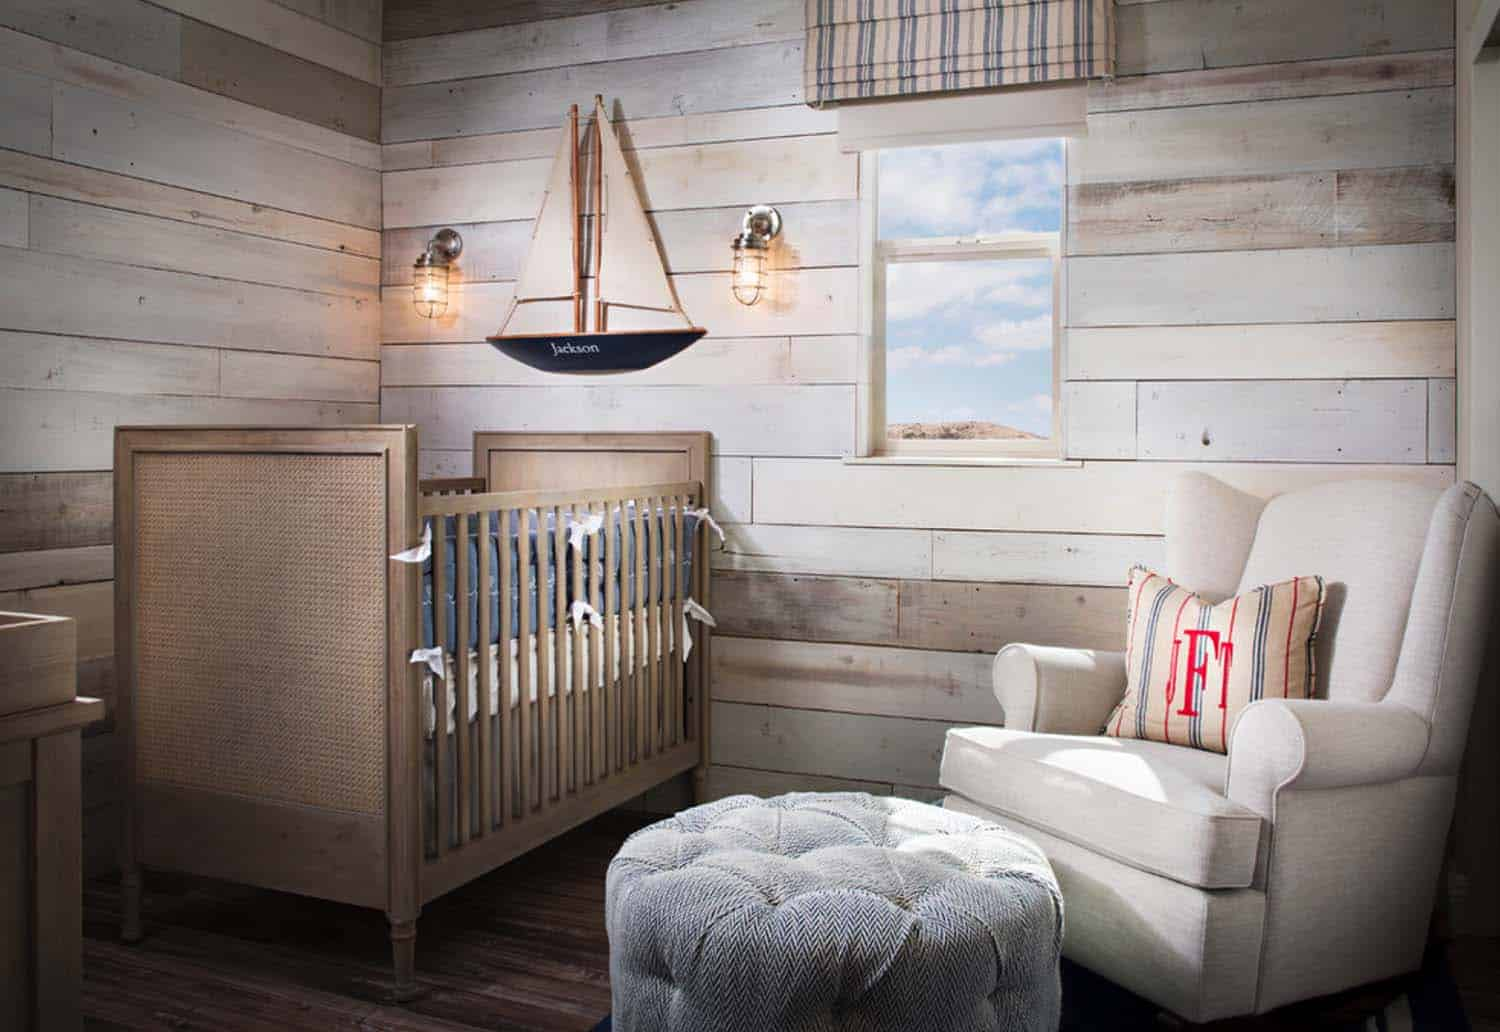 Stylish Nursery Decorating Ideas-18-1 Kindesign